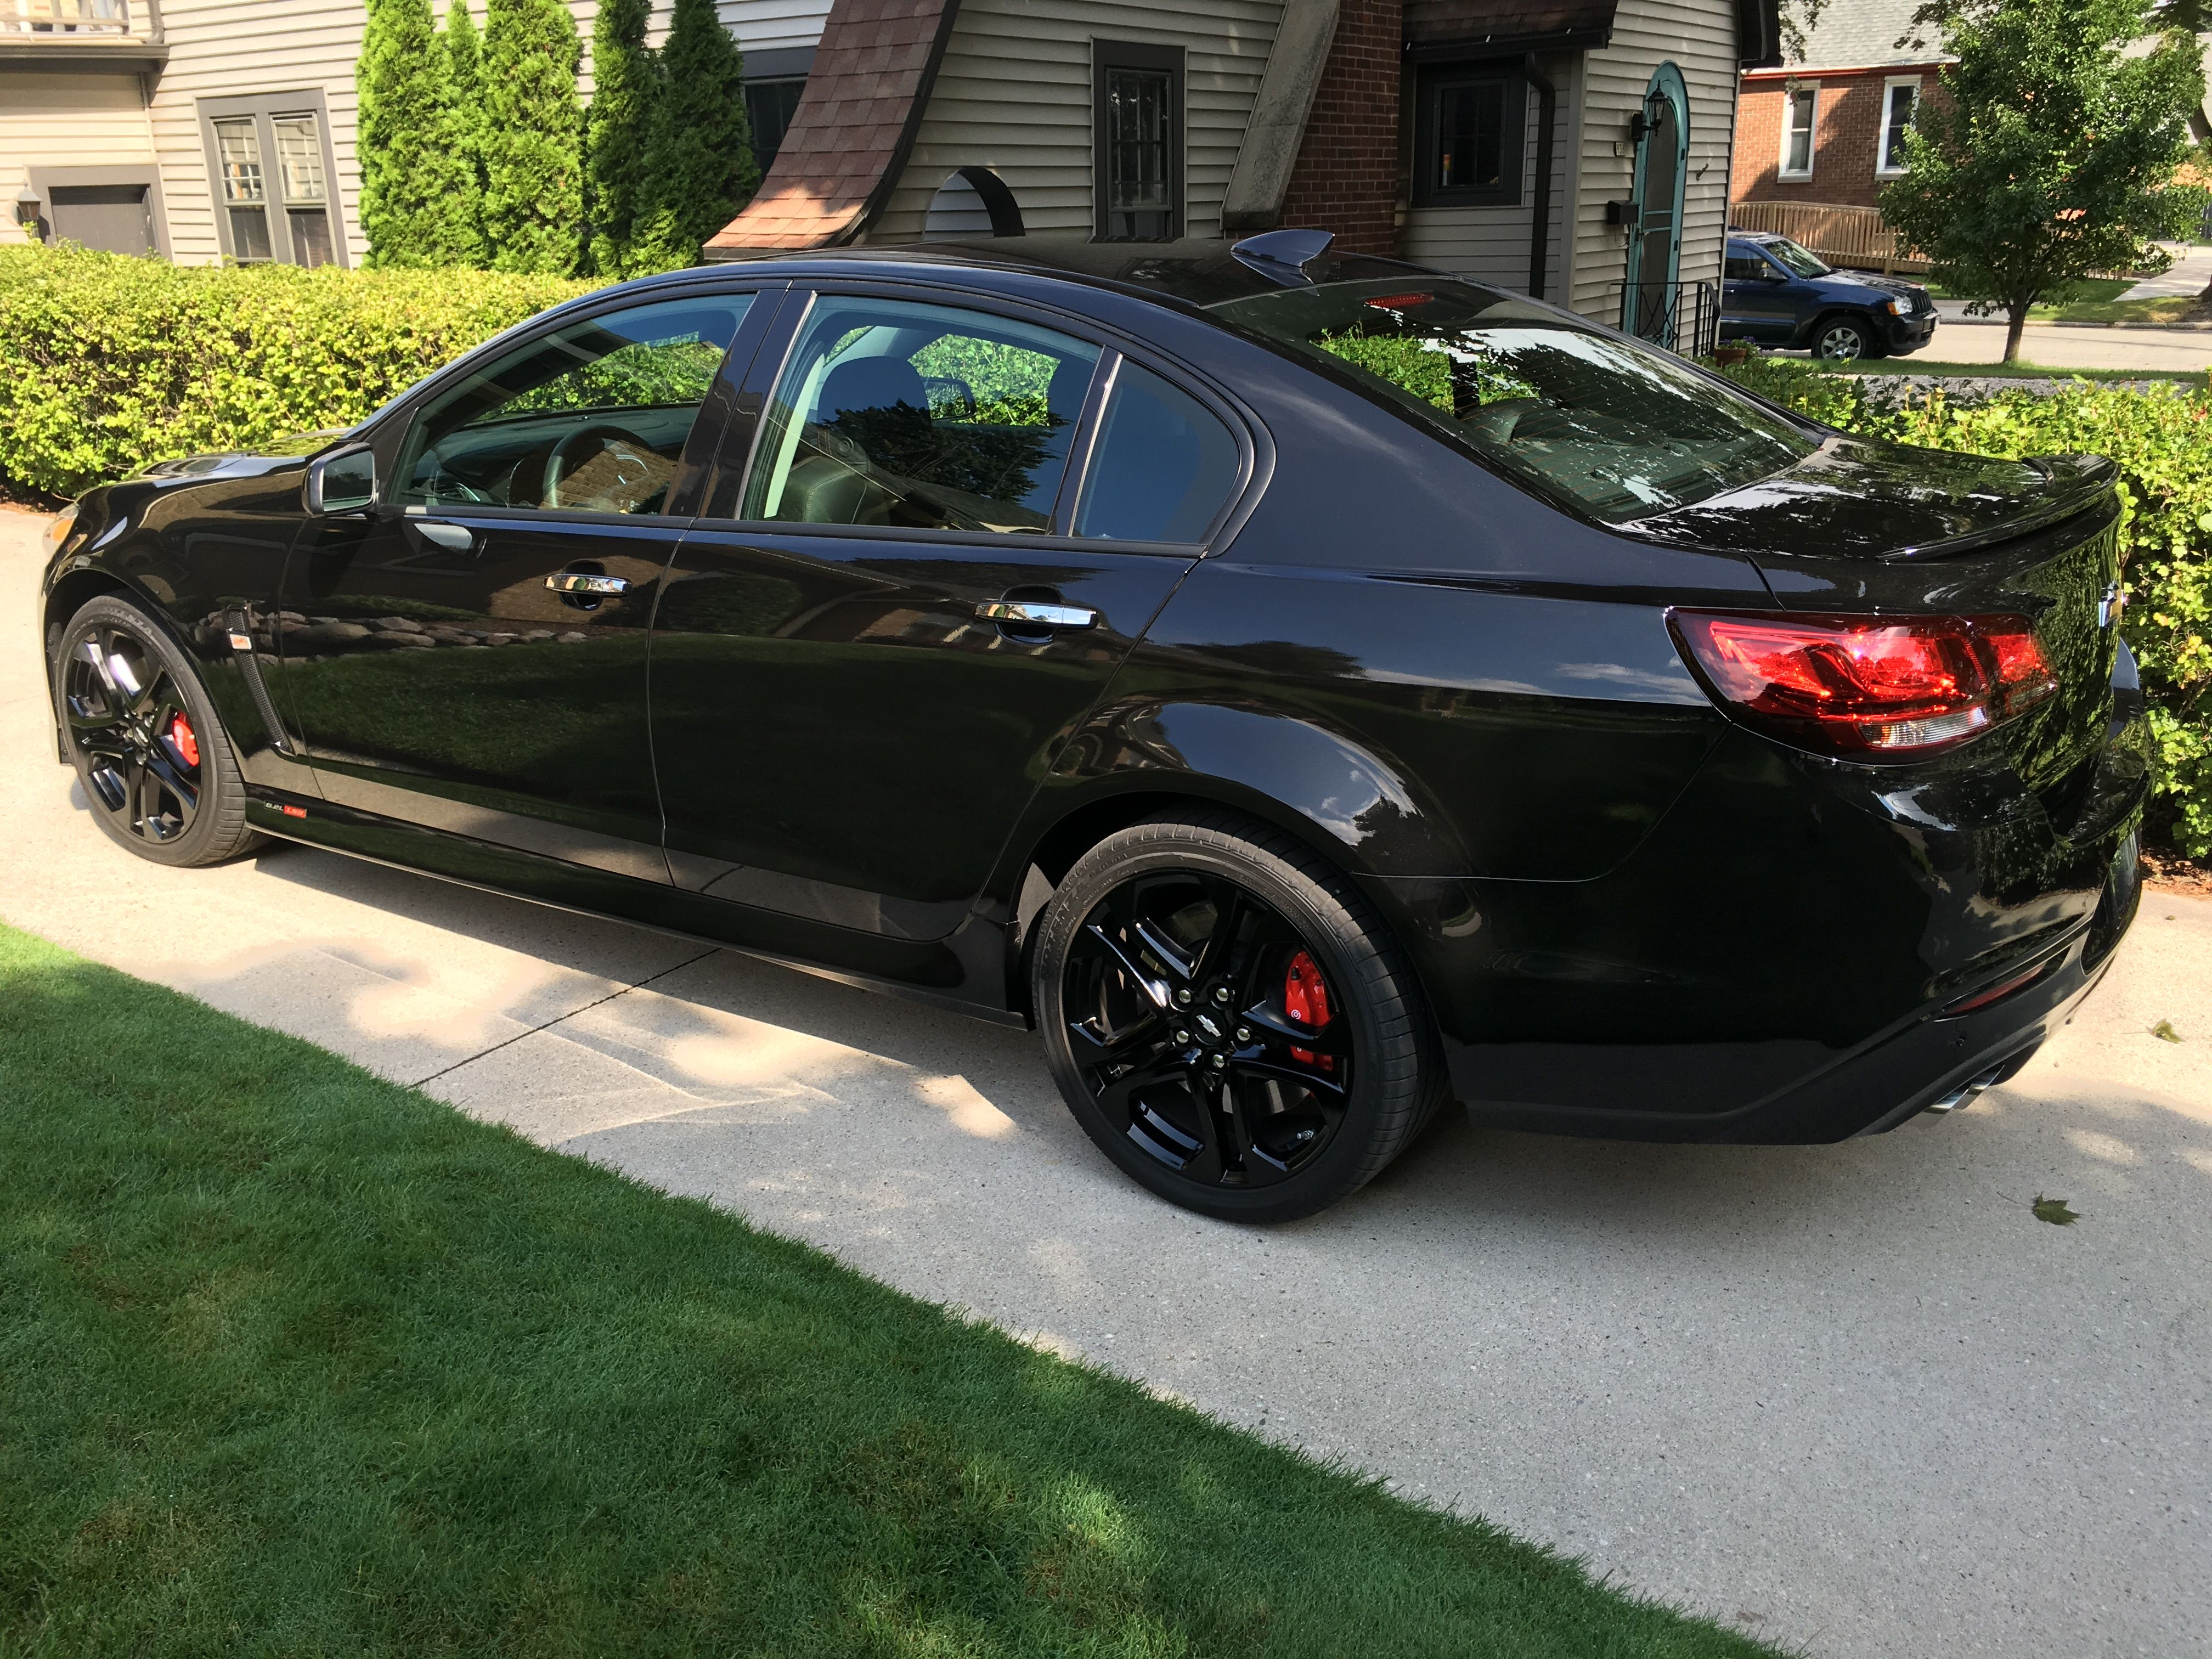 2016 chevy ss with blackout treatment chevy ss pinterest chevy ss ss and cars. Black Bedroom Furniture Sets. Home Design Ideas